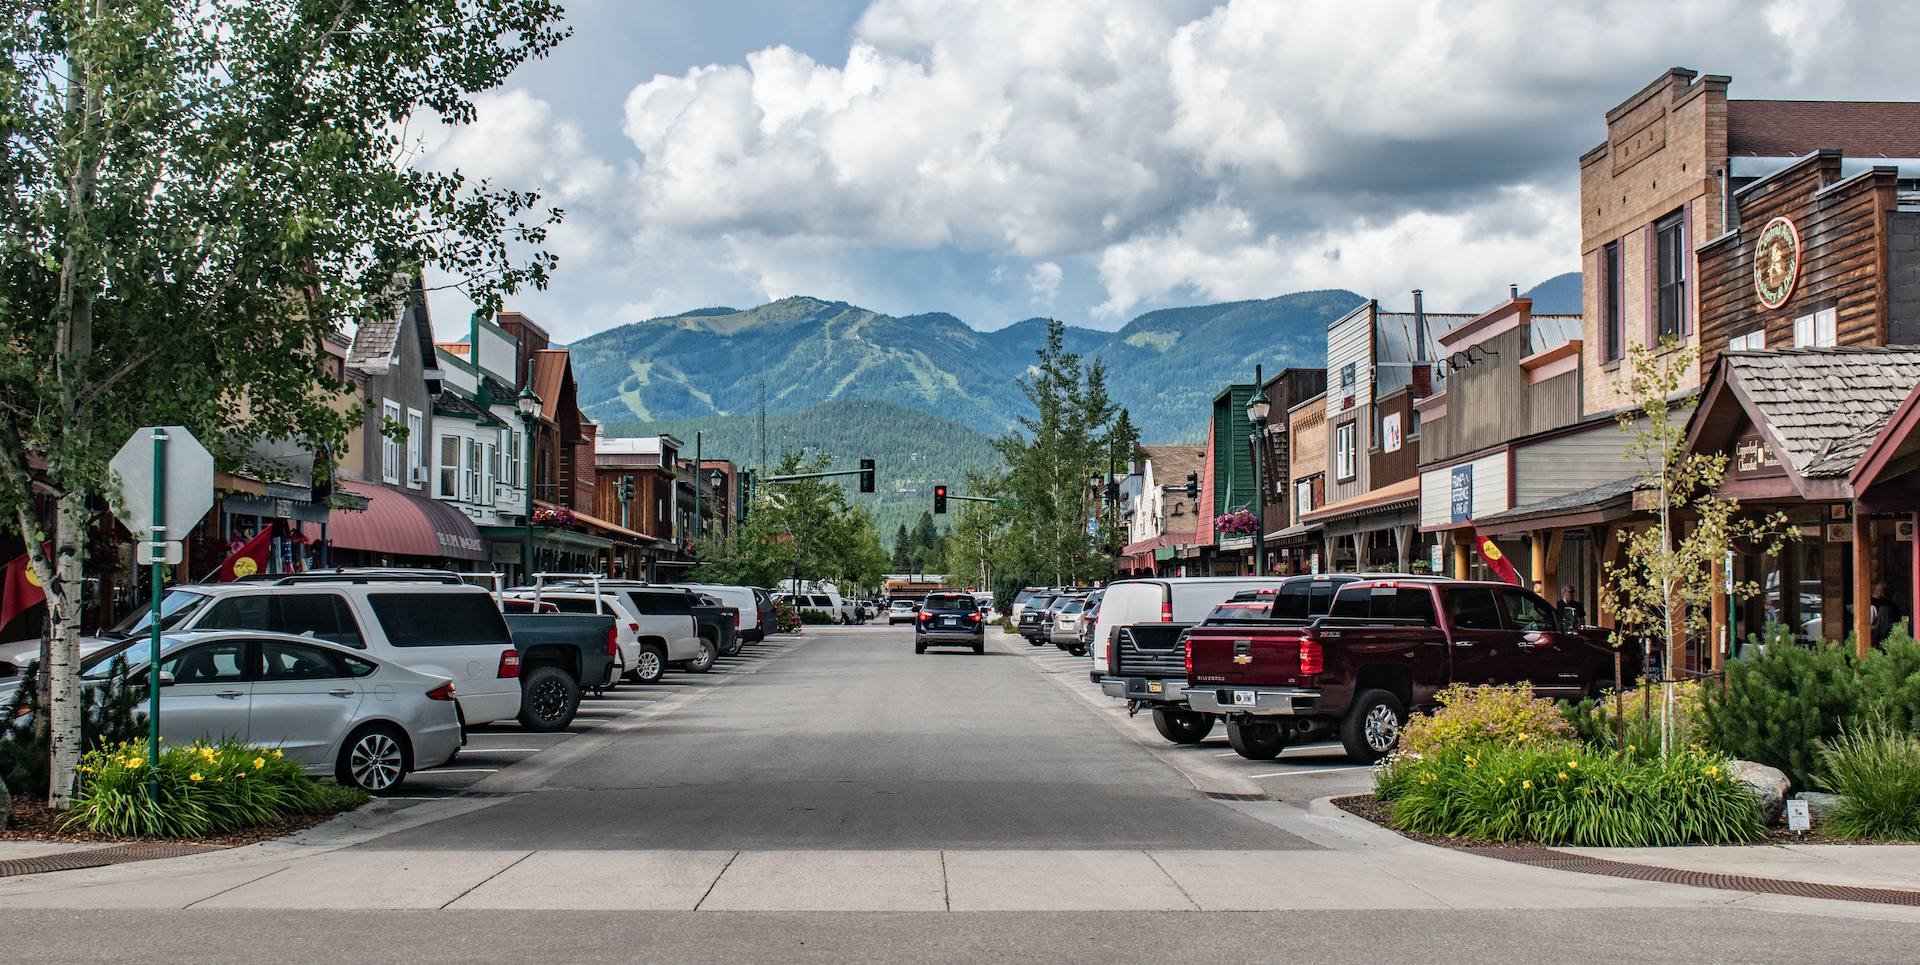 cars lining old-timey street with green mountains in the background